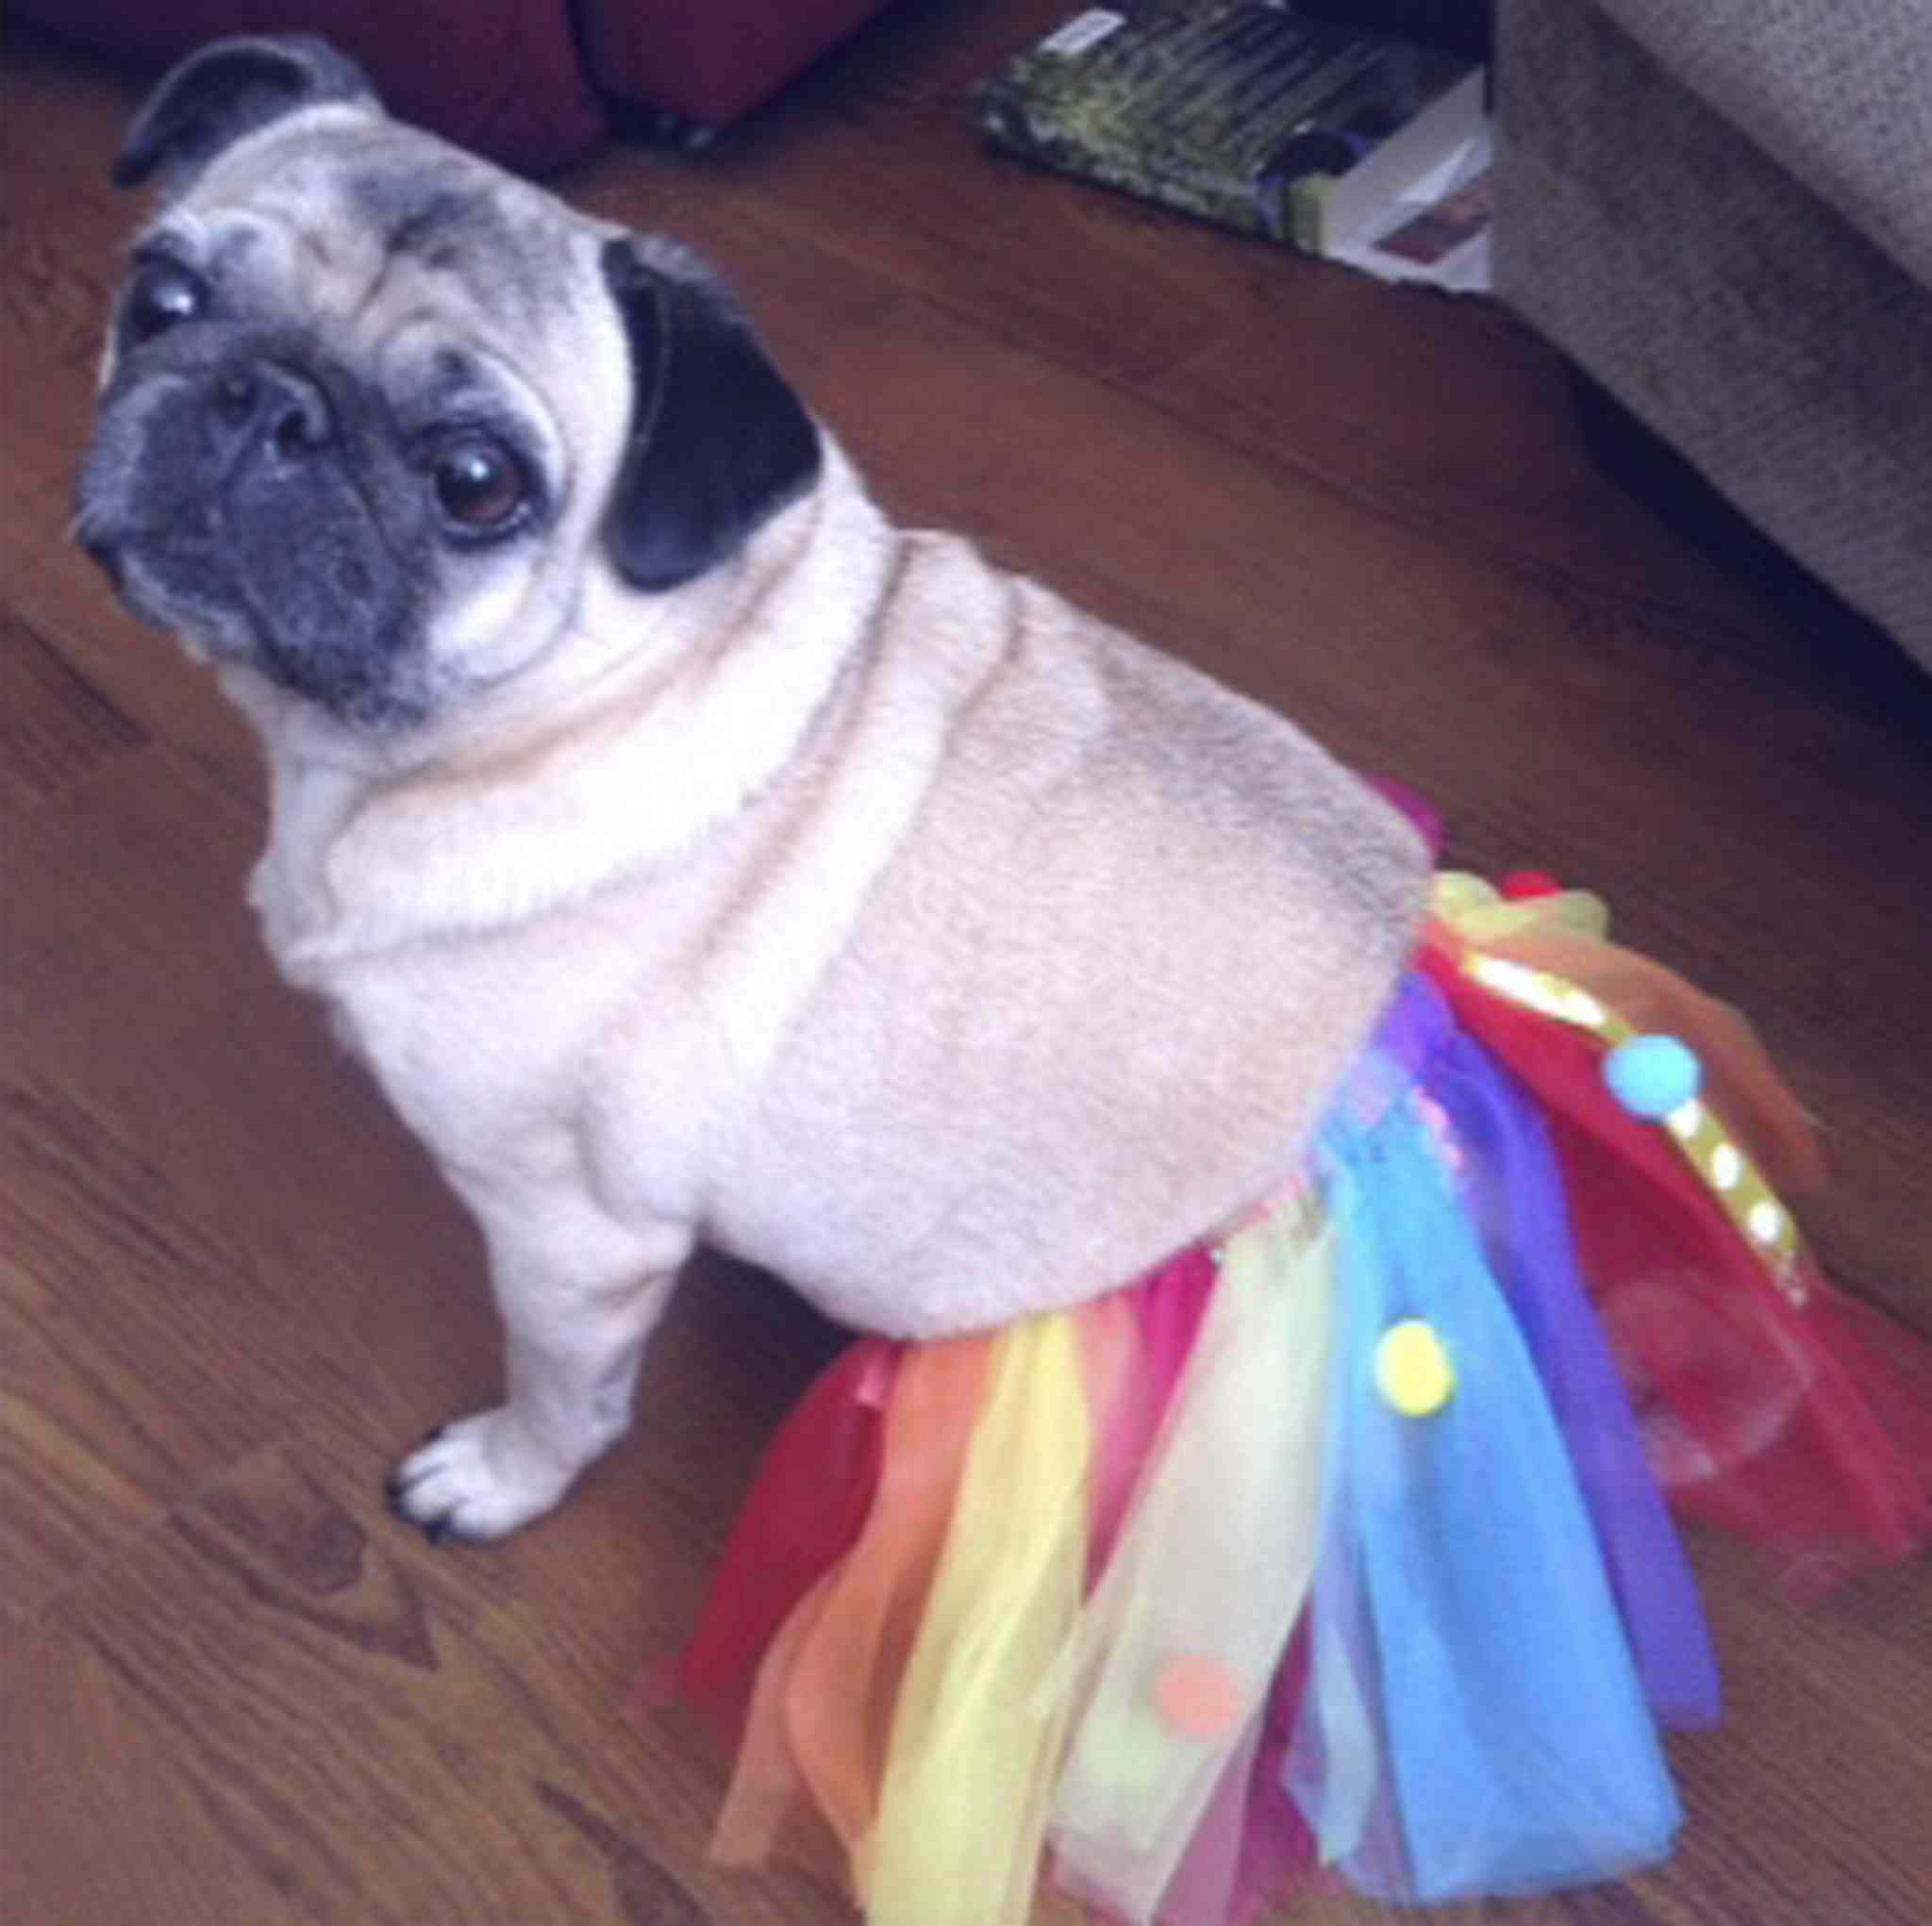 Owner Kendra Howard reports that pug Poppy has lost one pound. Poppy joined the fit-pet project not too long ago, so this is good progress. Kendra said Poppy has done very well, and although she has only lost one pound, she has made great progress with her exercise in general.